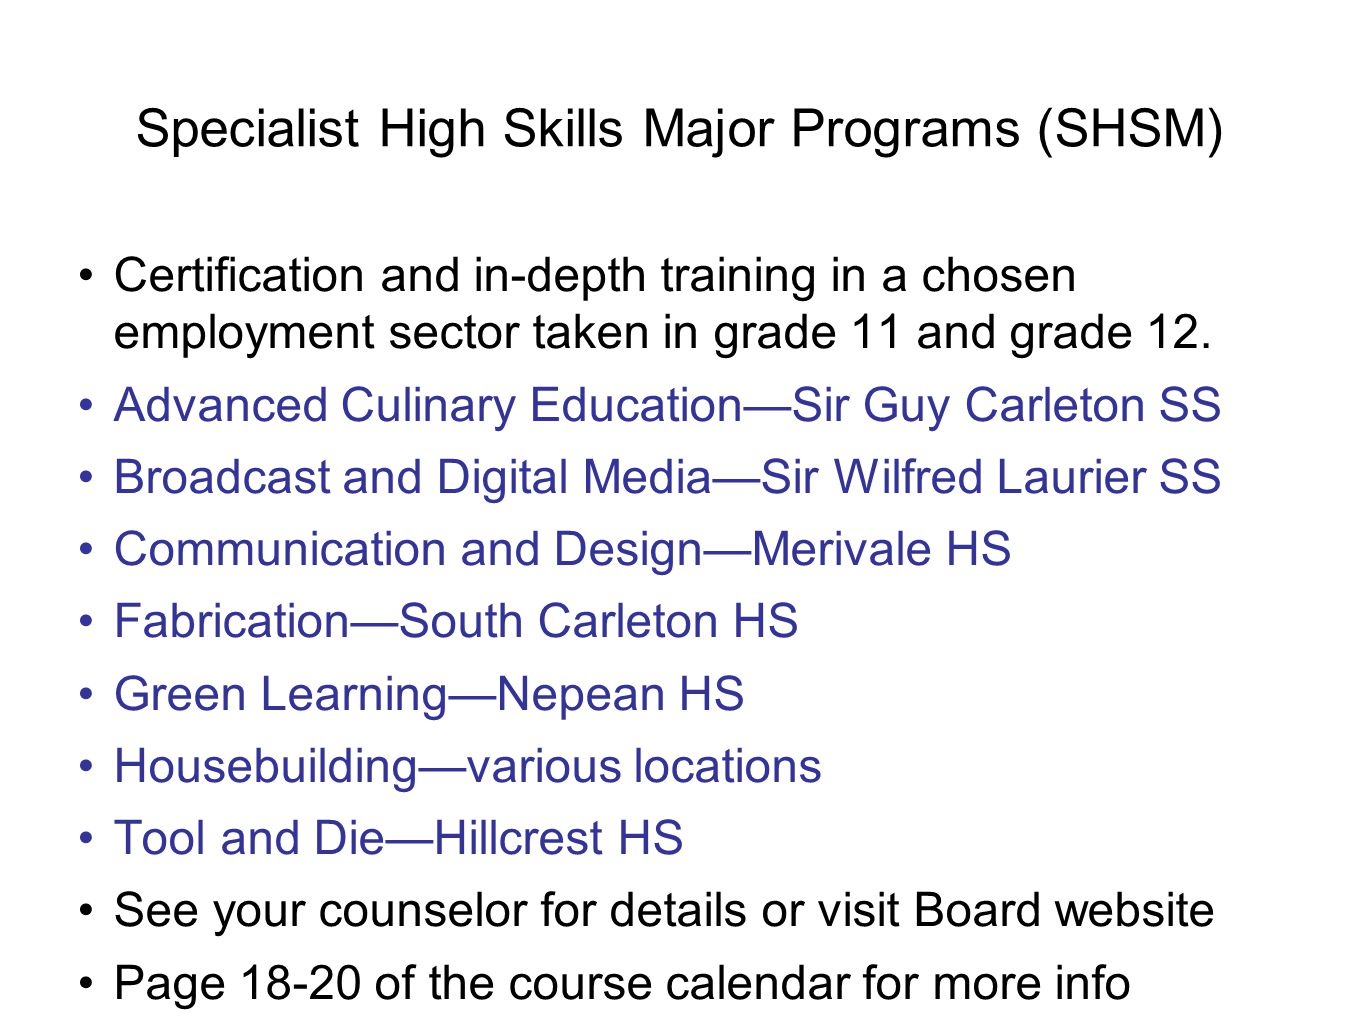 Specialist High Skills Major Programs (SHSM) Certification and in-depth training in a chosen employment sector taken in grade 11 and grade 12. Advance